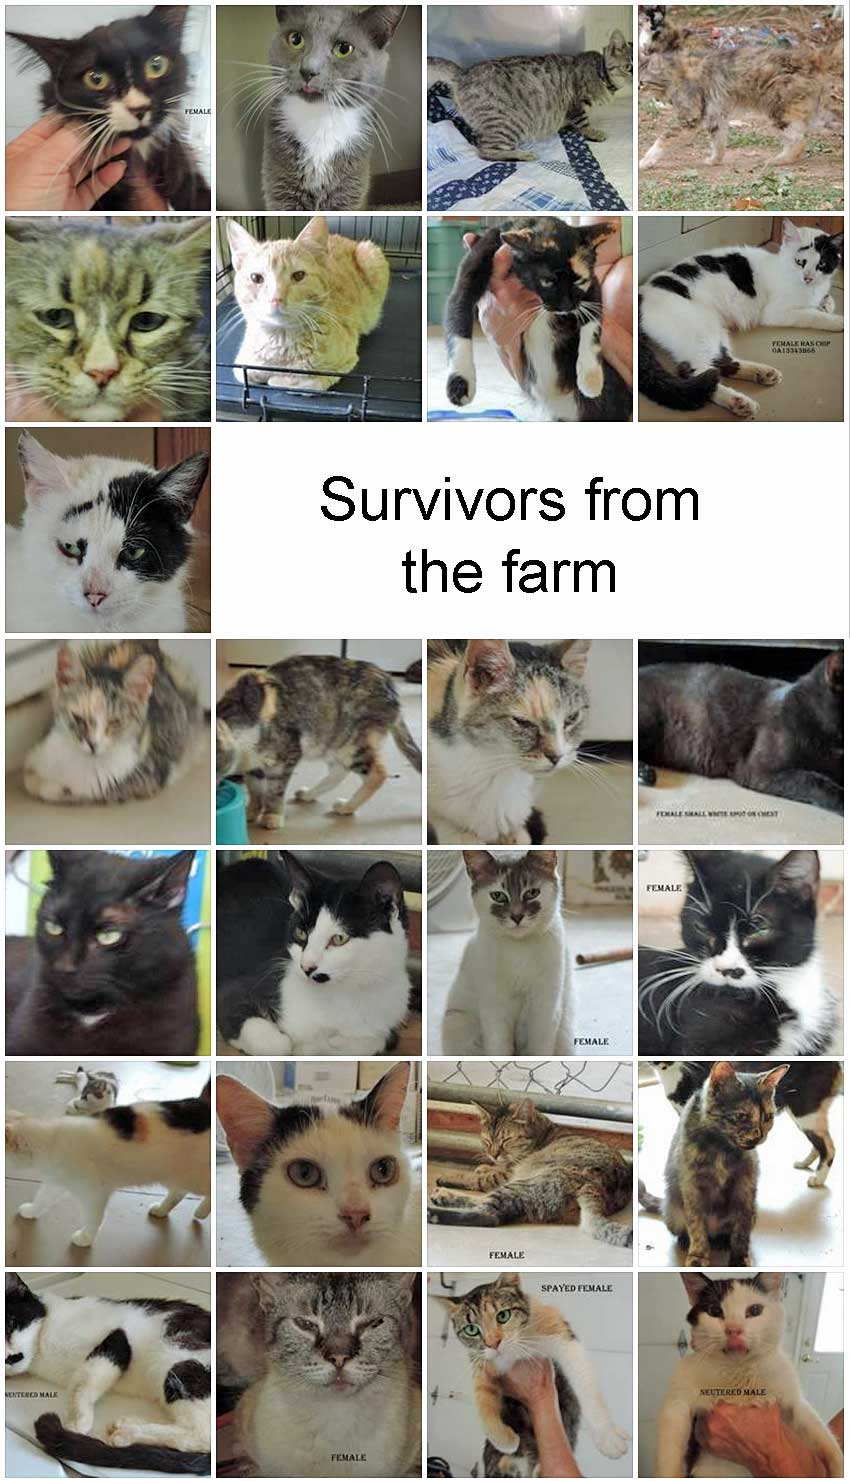 surviving cats from the Julianne Westberry cat hoarding tragedy